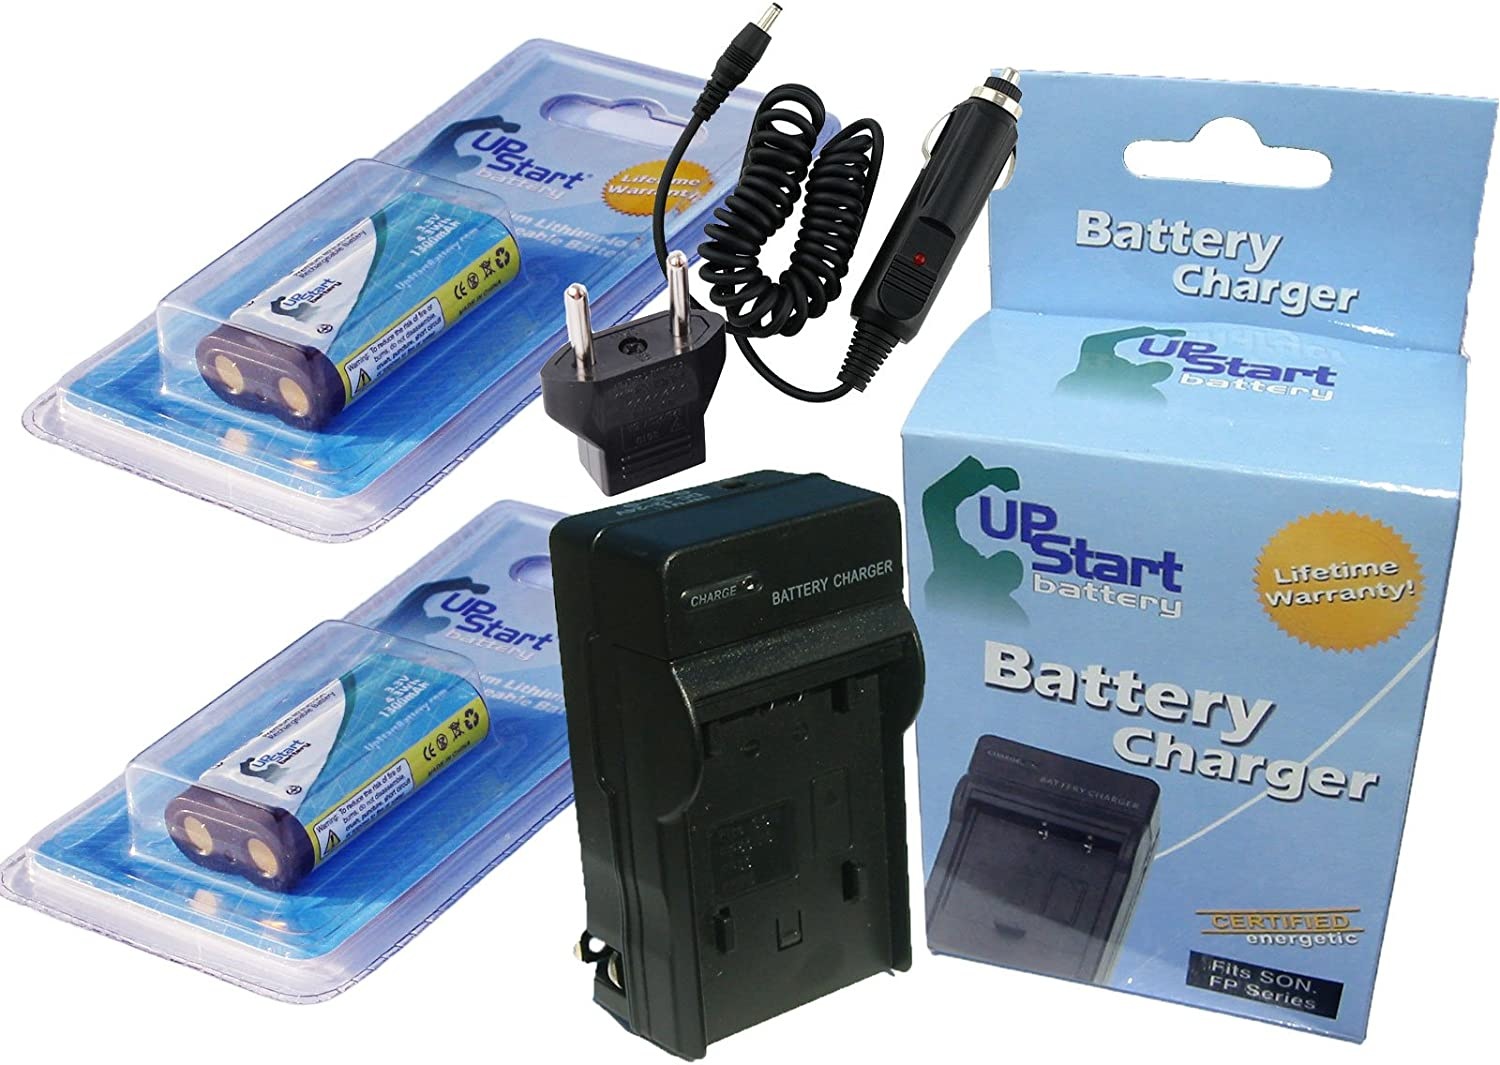 Charger Replacement for Olympus C-4000Z Battery 1300mAh 3.3V Lithium-Ion Compatible with Olympus CR-V3 Digital Camera Battery and Charger 2 Pack